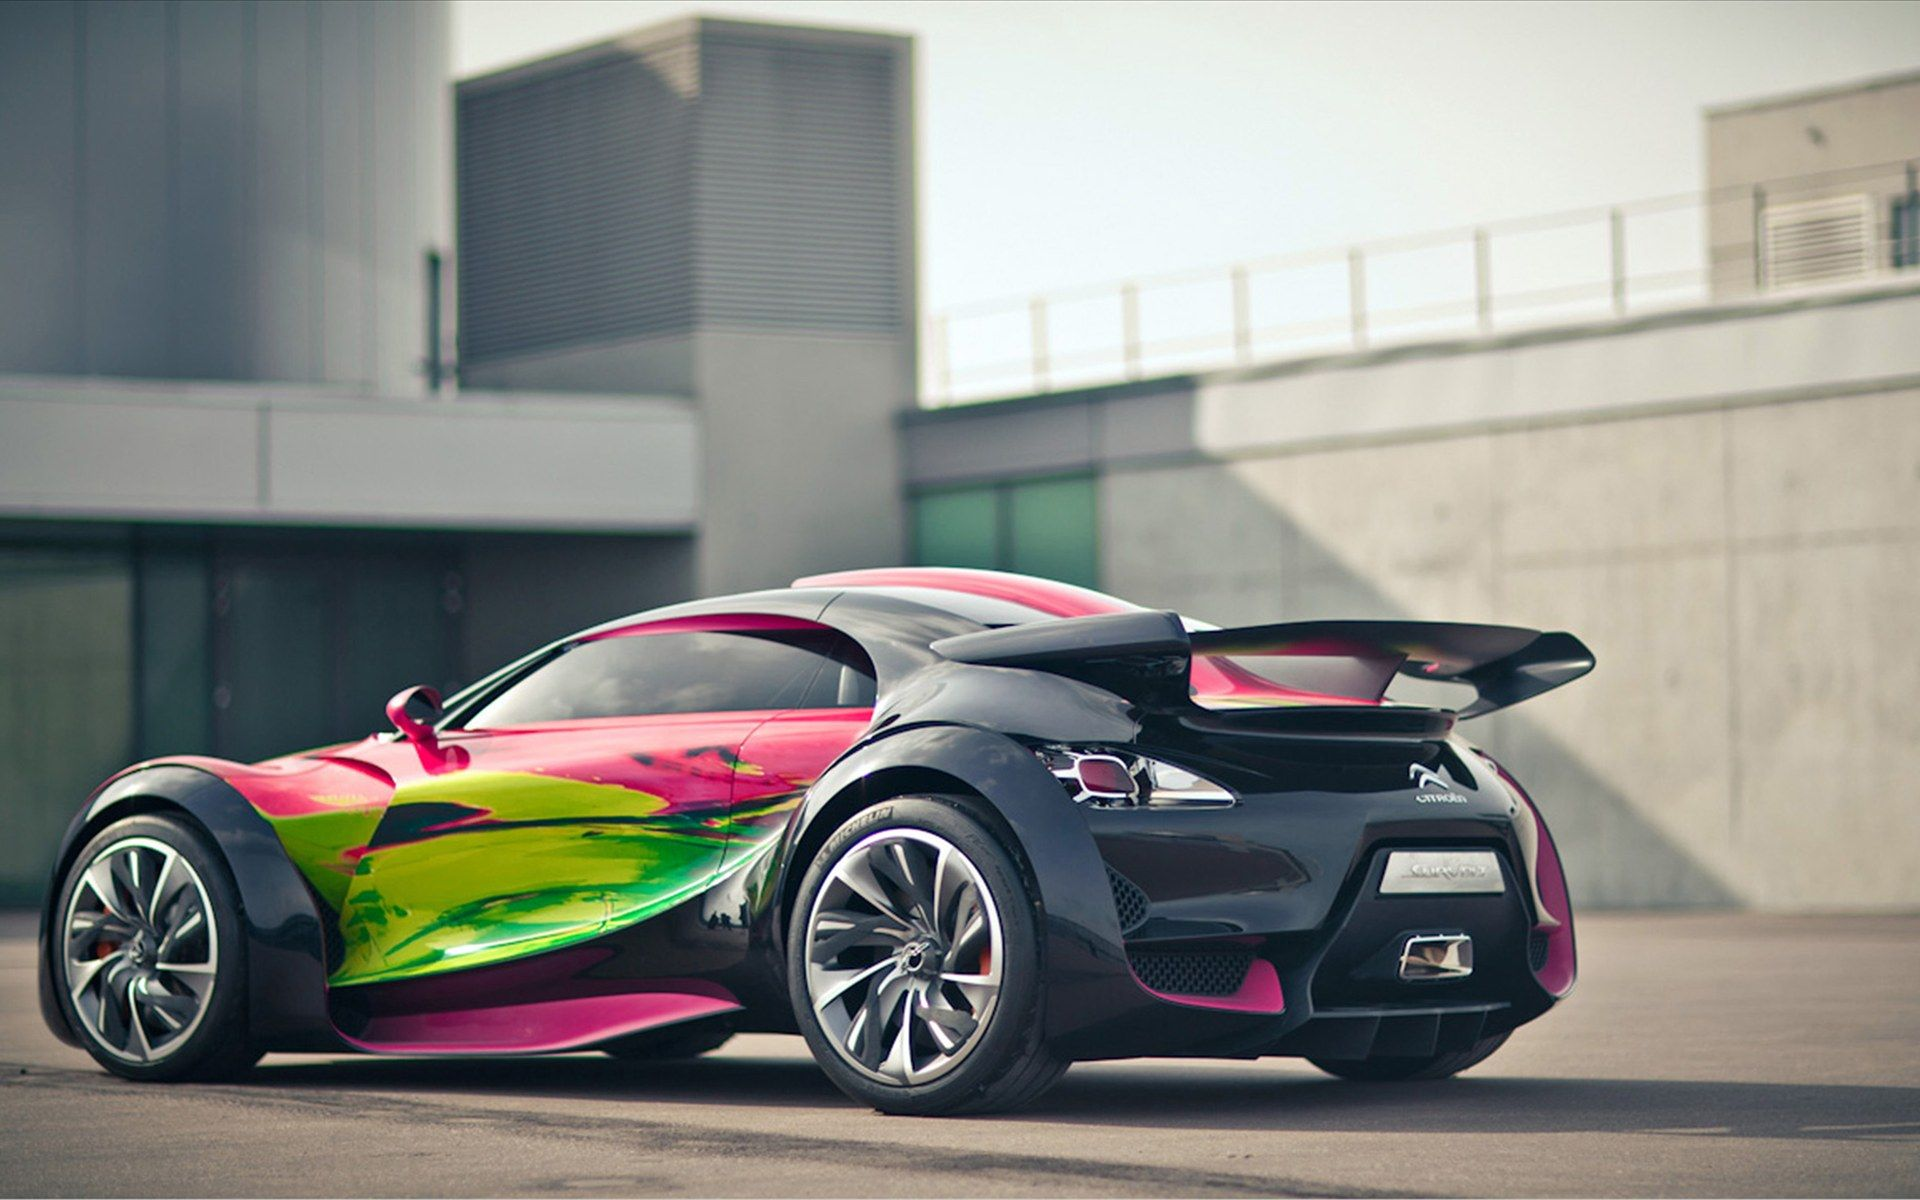 Citroen survolt concept art car 2010